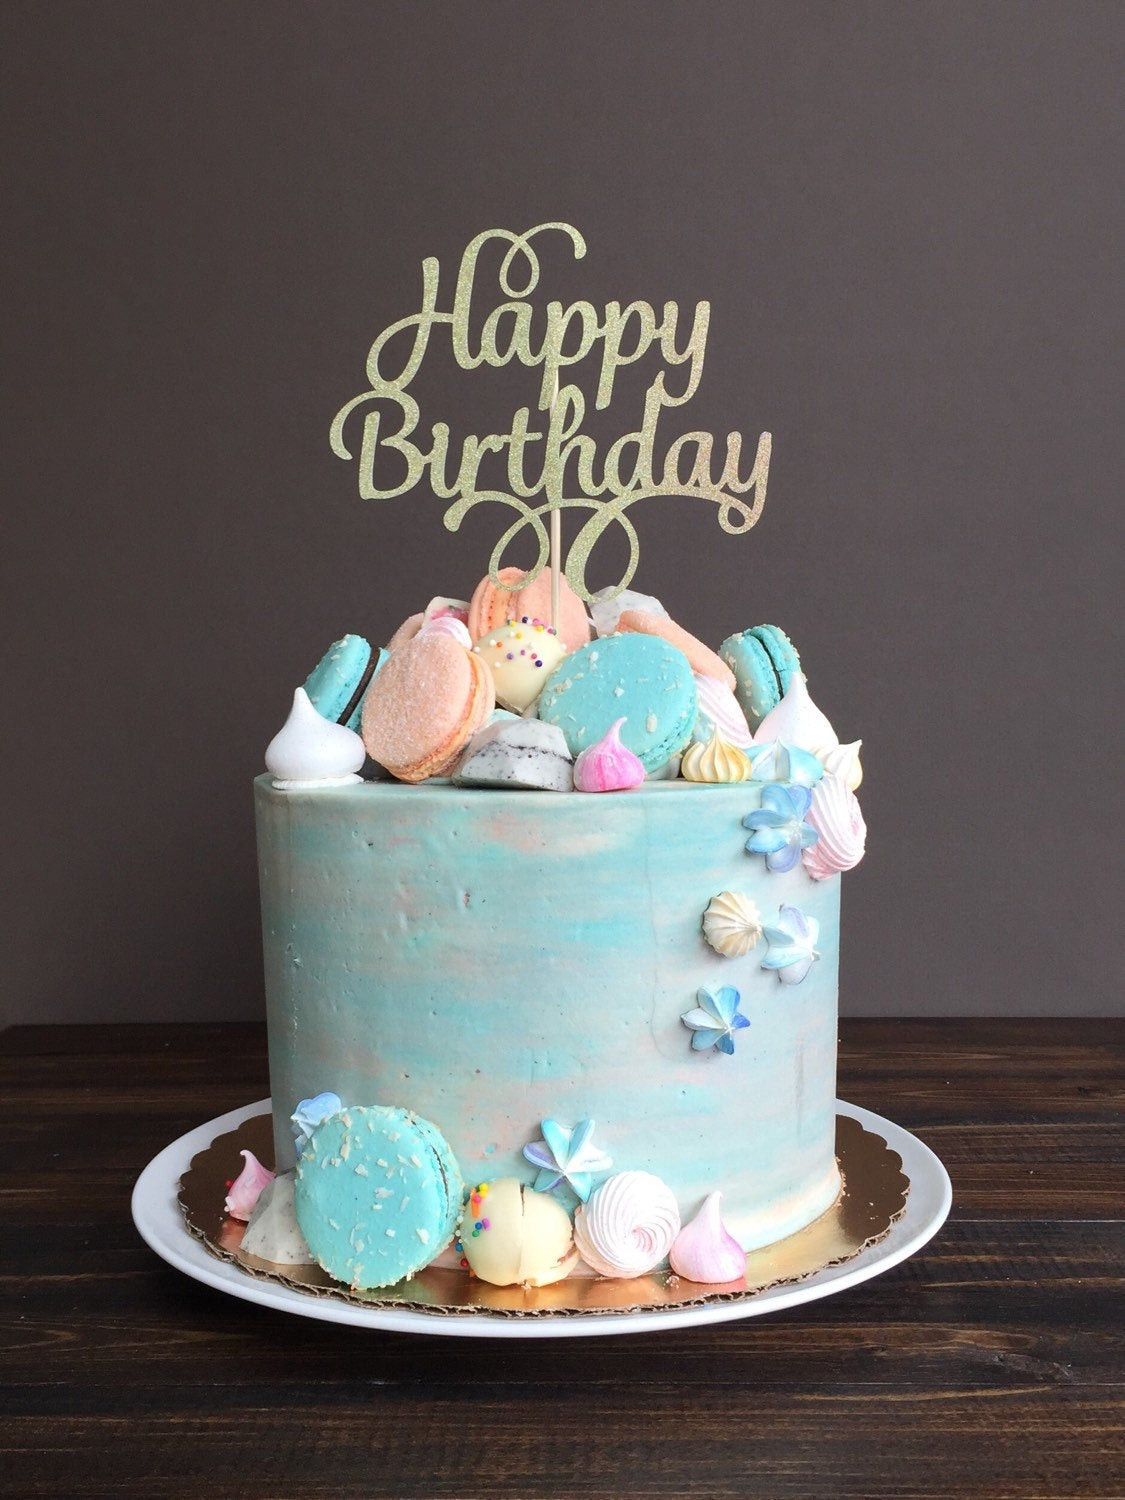 Best ideas about Cake Happy Birthday . Save or Pin Cake topper Happy Birthday cake topper birthday cake Now.